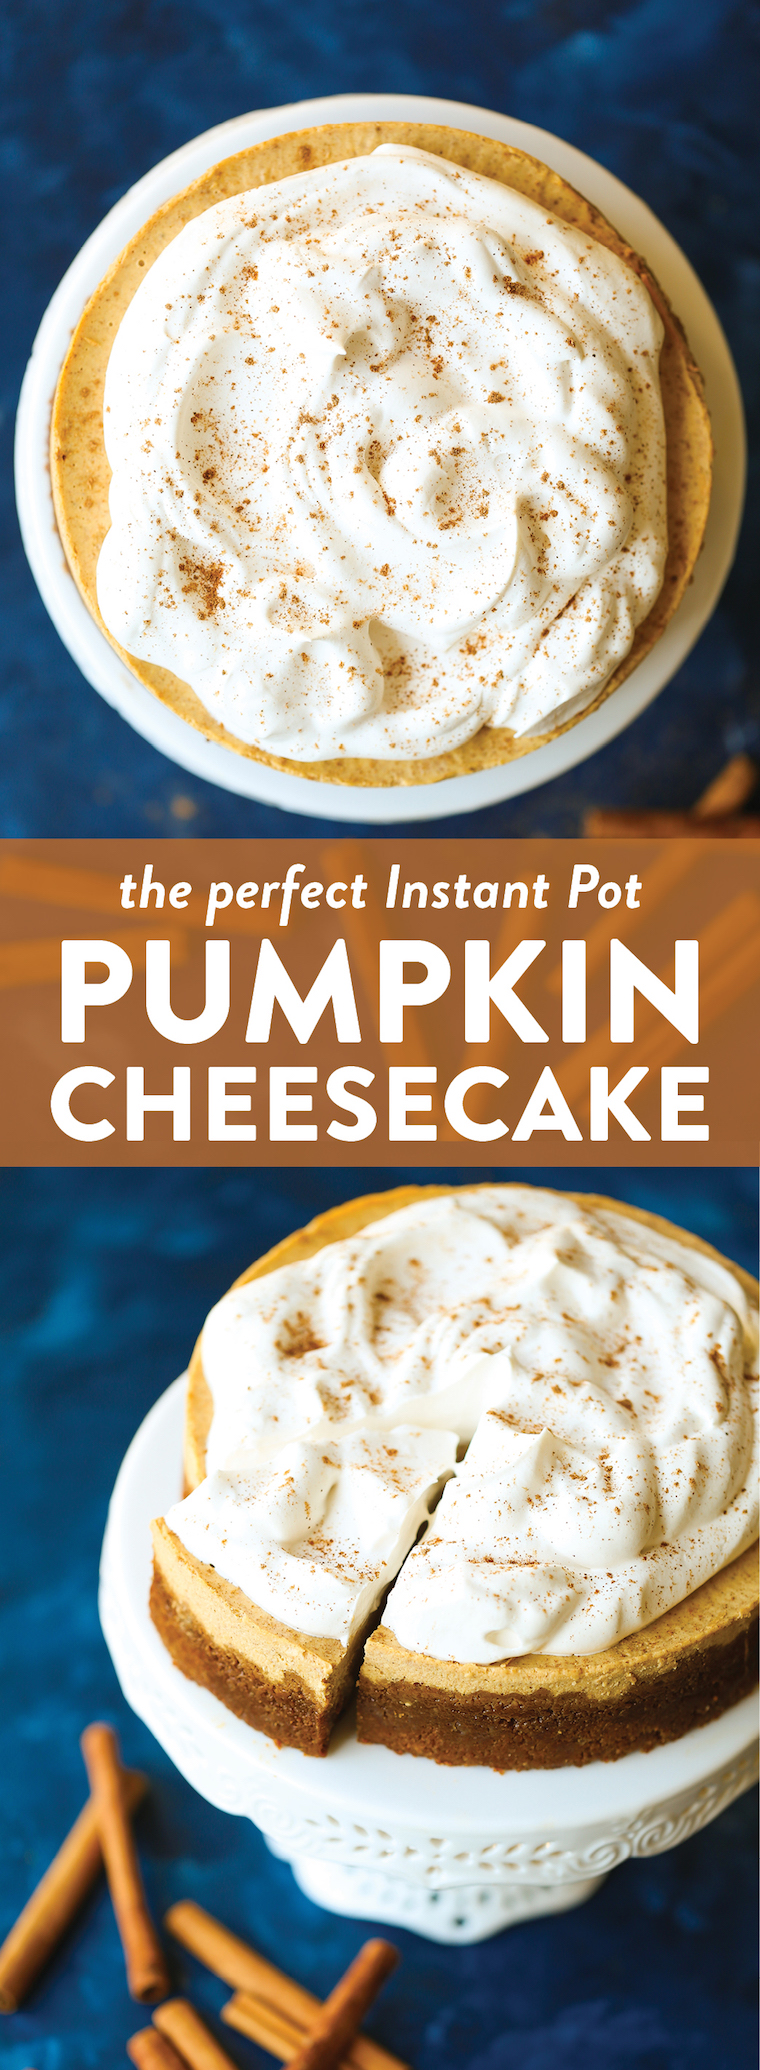 Instant Pot Pumpkin Cheesecake - So amazingly smooth and creamy with the most irresistible gingersnap cookie crust! And you don't even need oven space! WIN!